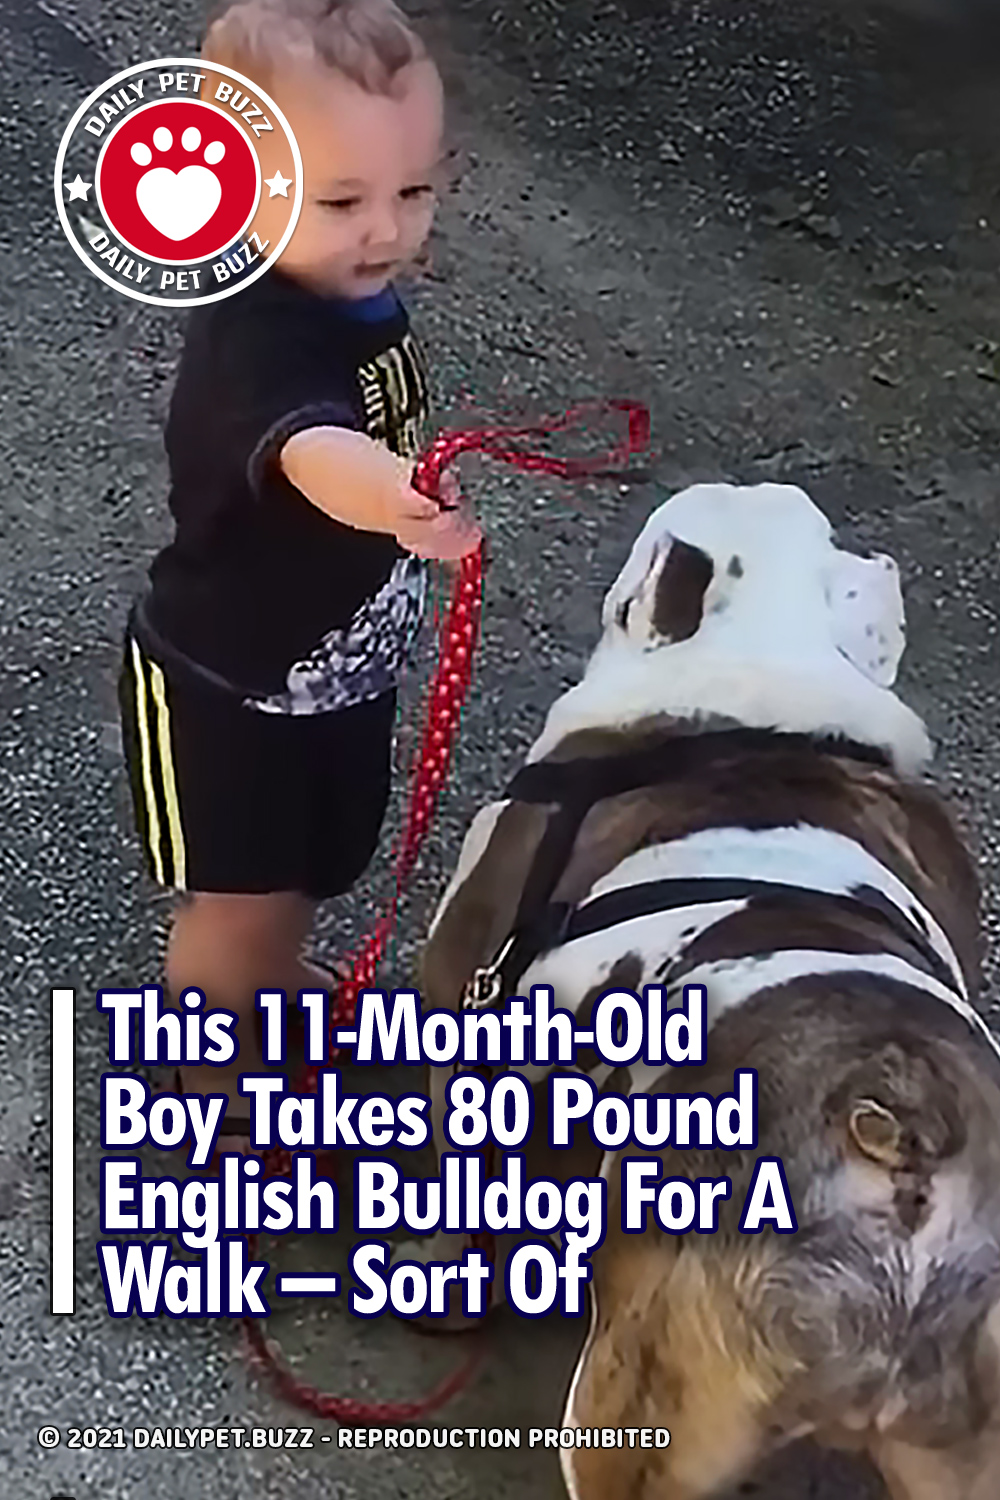 This 11-Month-Old Boy Takes 80 Pound English Bulldog For A Walk – Sort Of